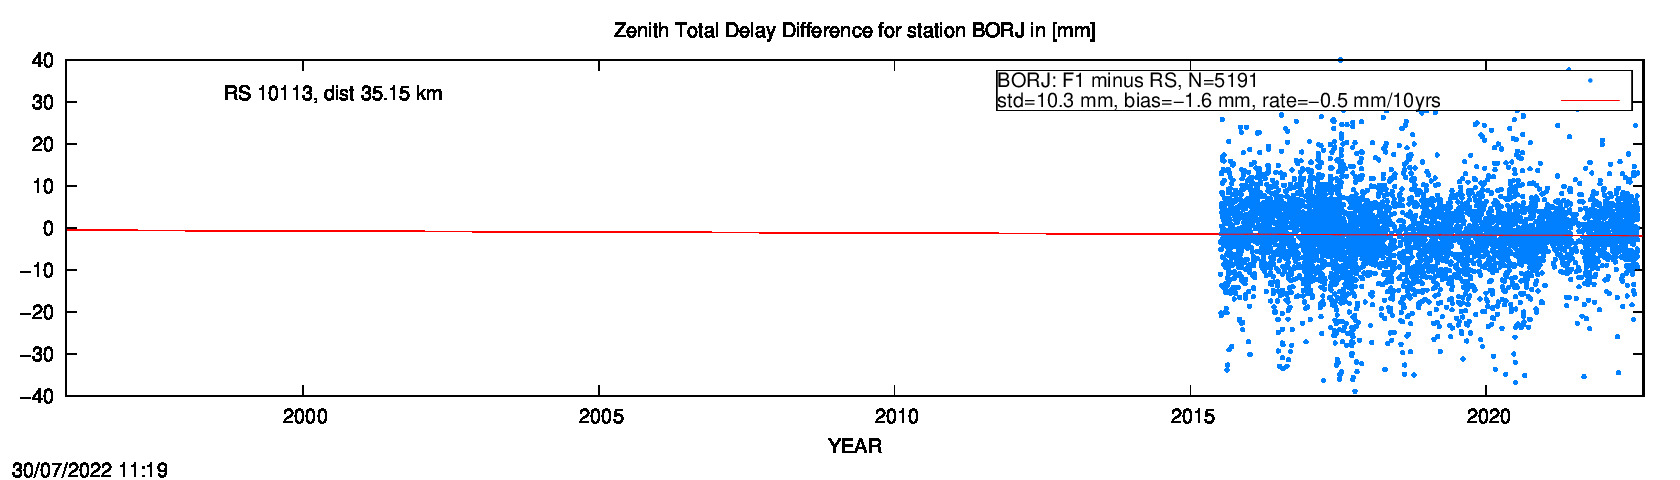 Troposphere difference to radio sonde for BORJ